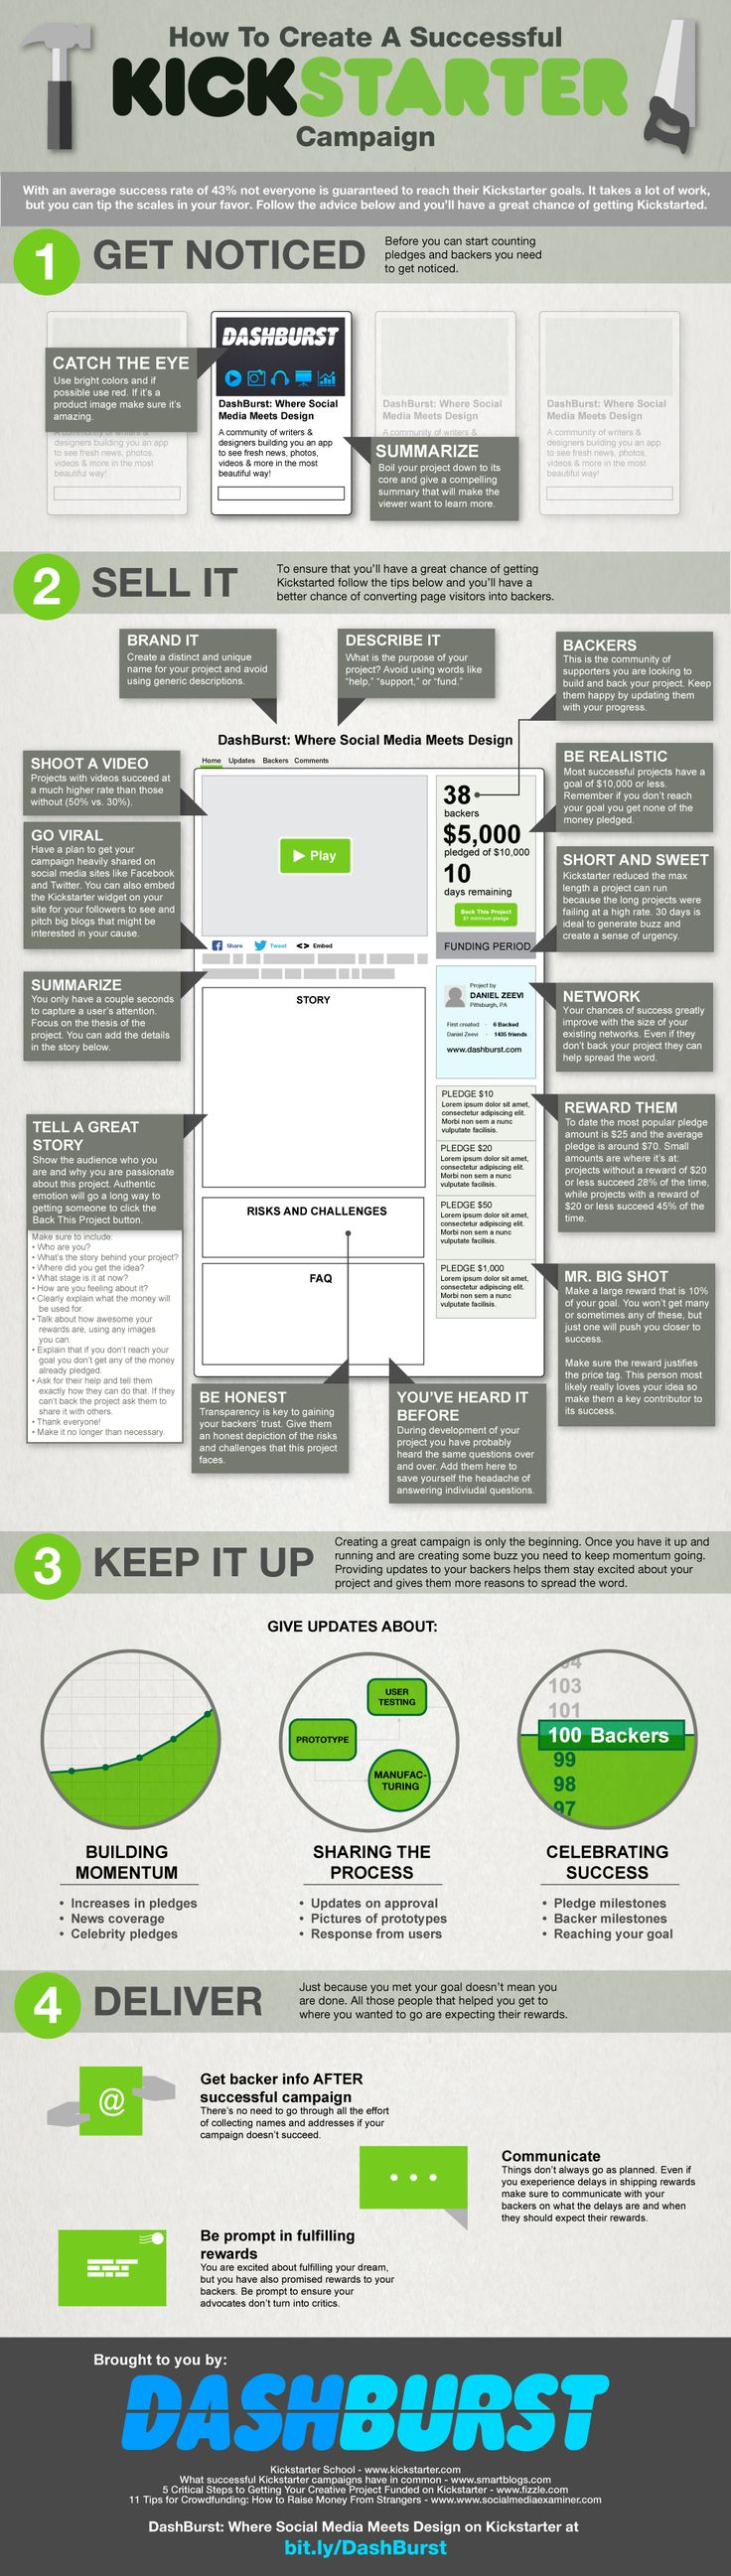 How to Create a Successful Kickstarter Campaign [INFOGRAPHIC] - http://dashburst.com/infographic/how-to-create-a-successful-kickstarter/